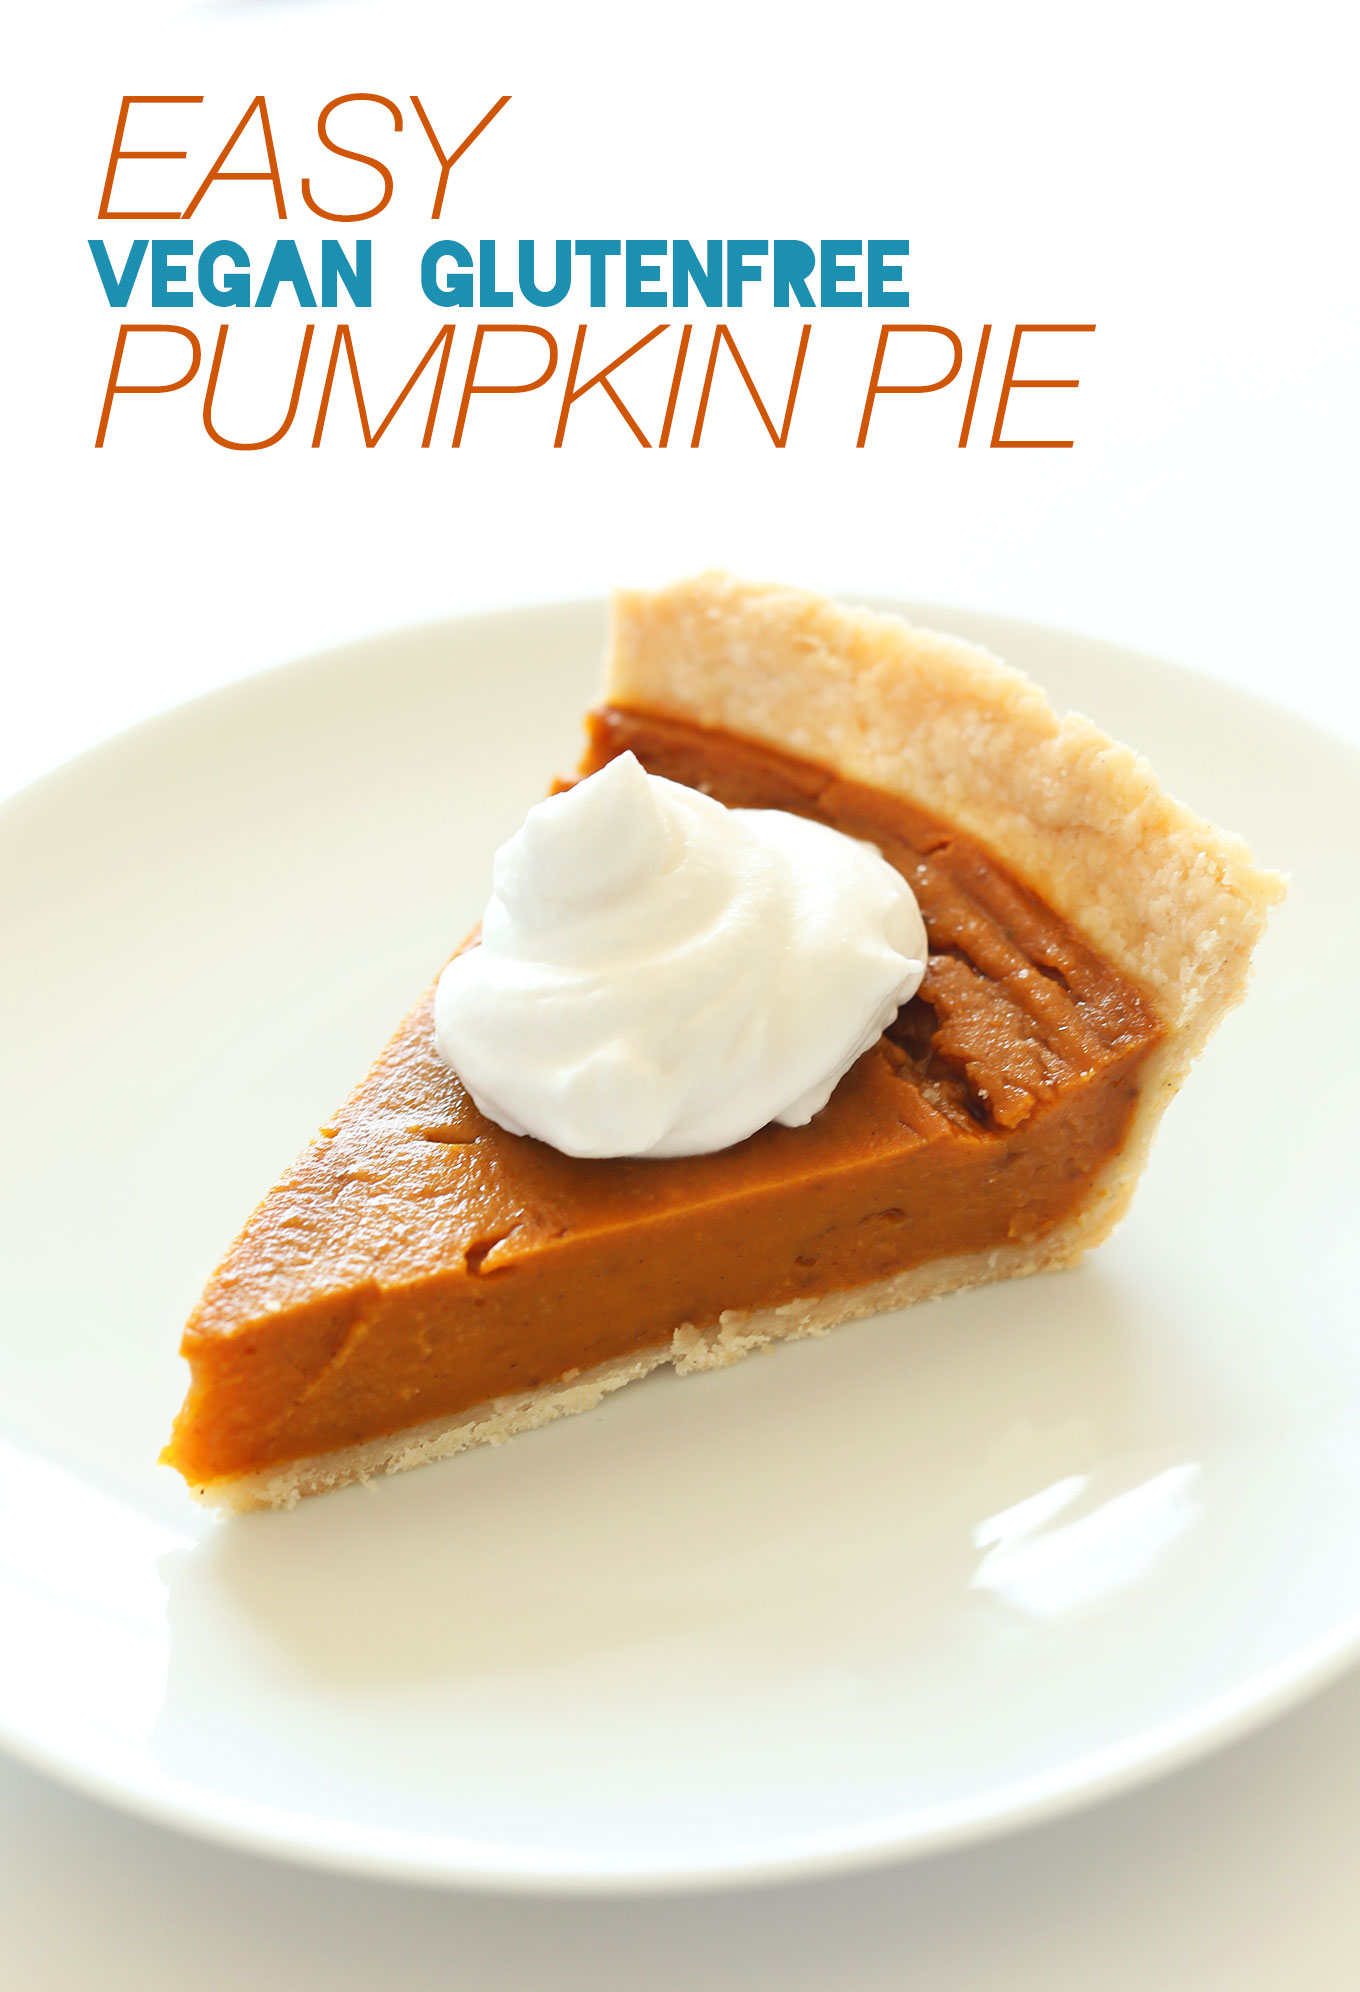 Slice of Vegan Gluten-Free Pumpkin Pie topped with coconut whipped cream